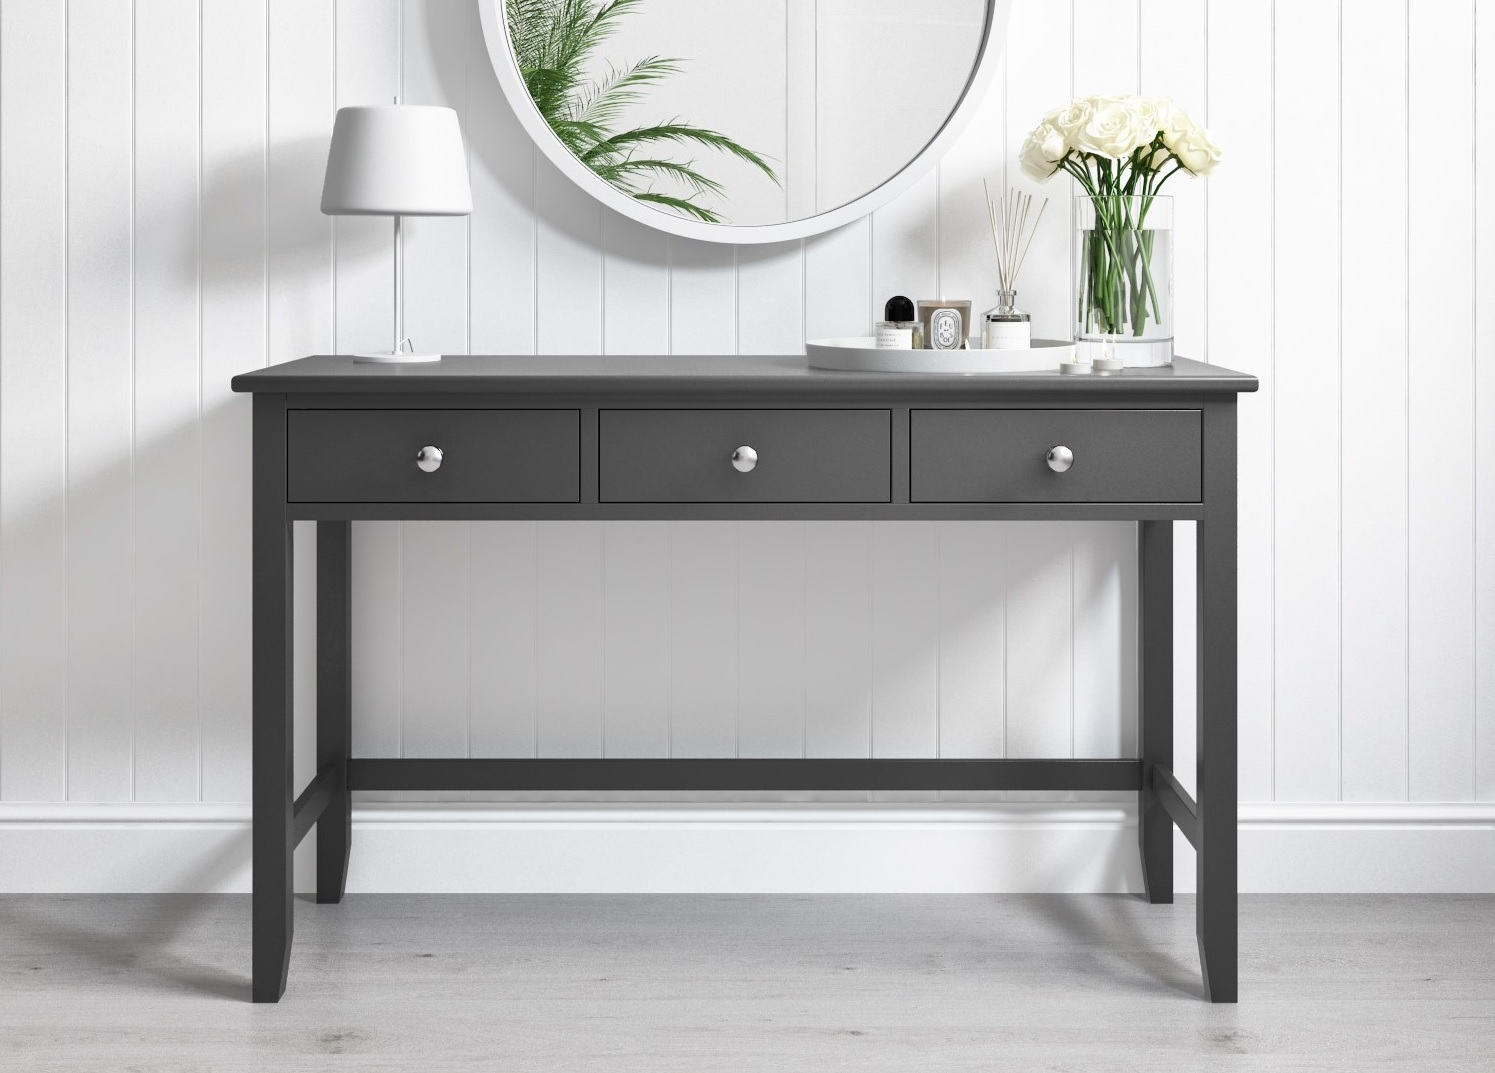 Top 10 Brands to Buy Console Tables Online & Instore